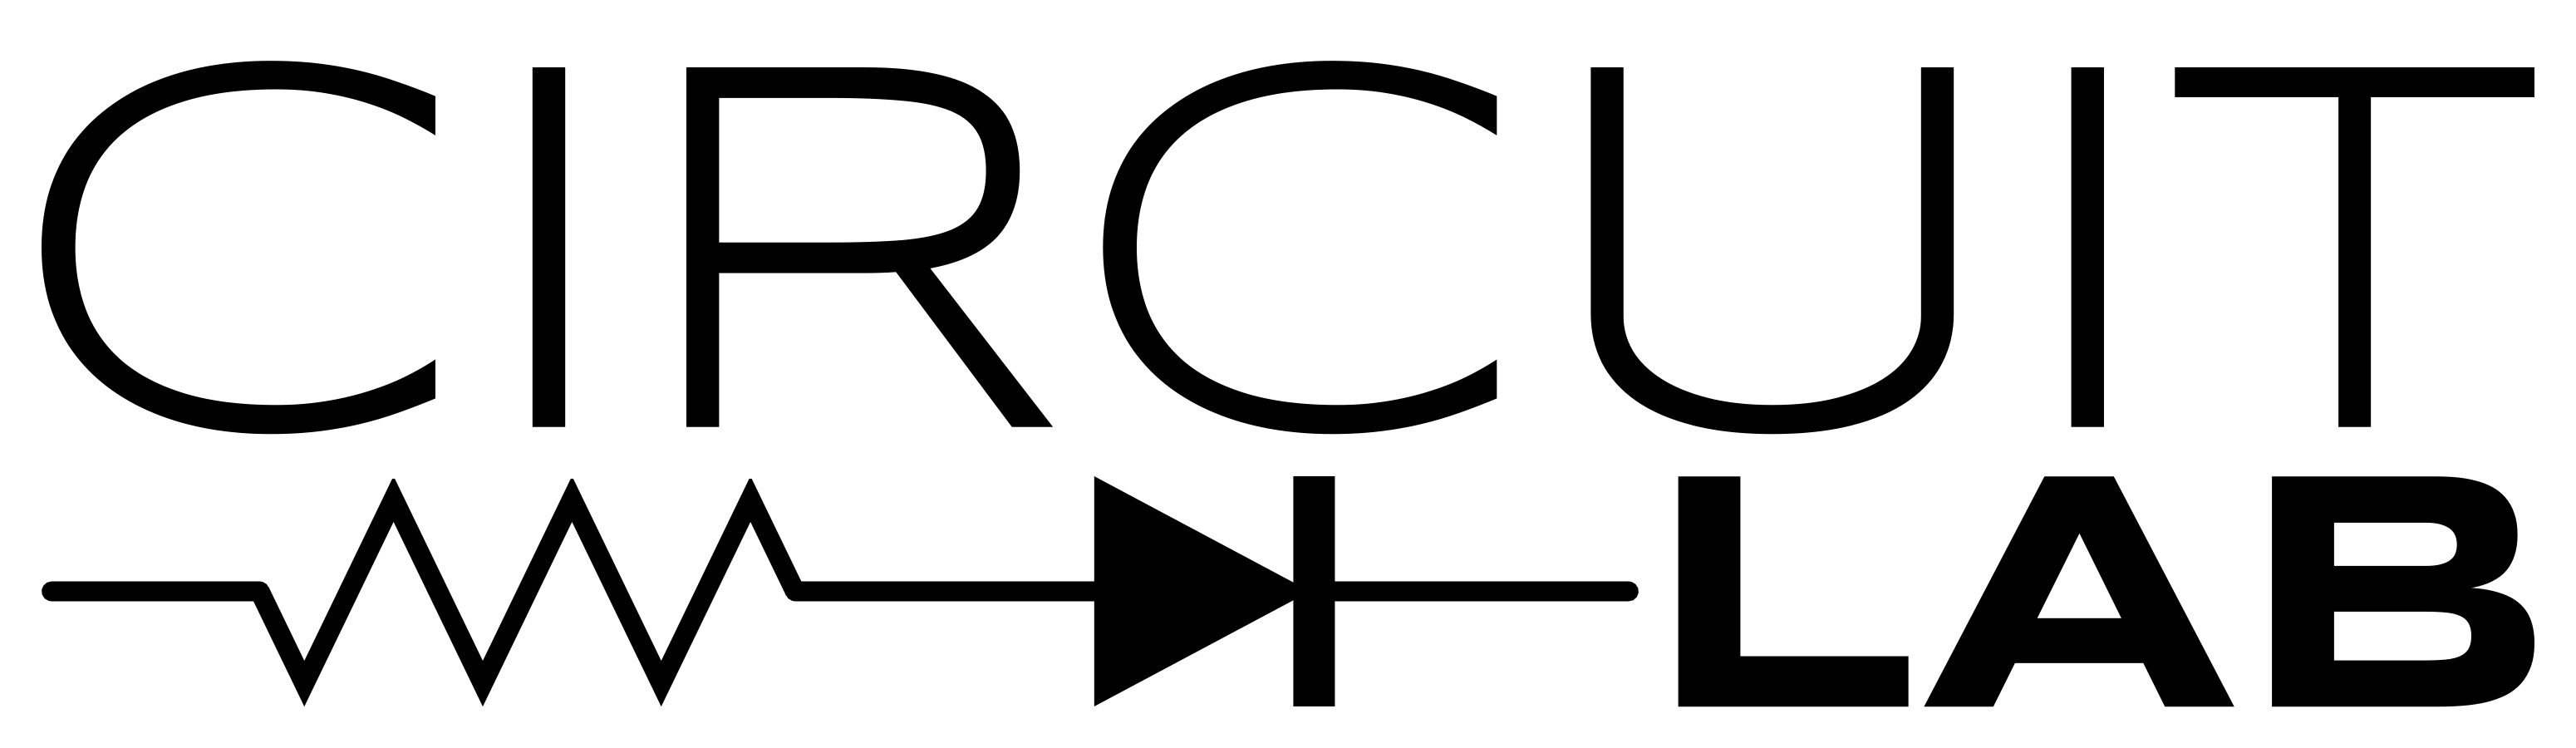 CircuitLab Launches In-Browser Electronic Circuit Simulator